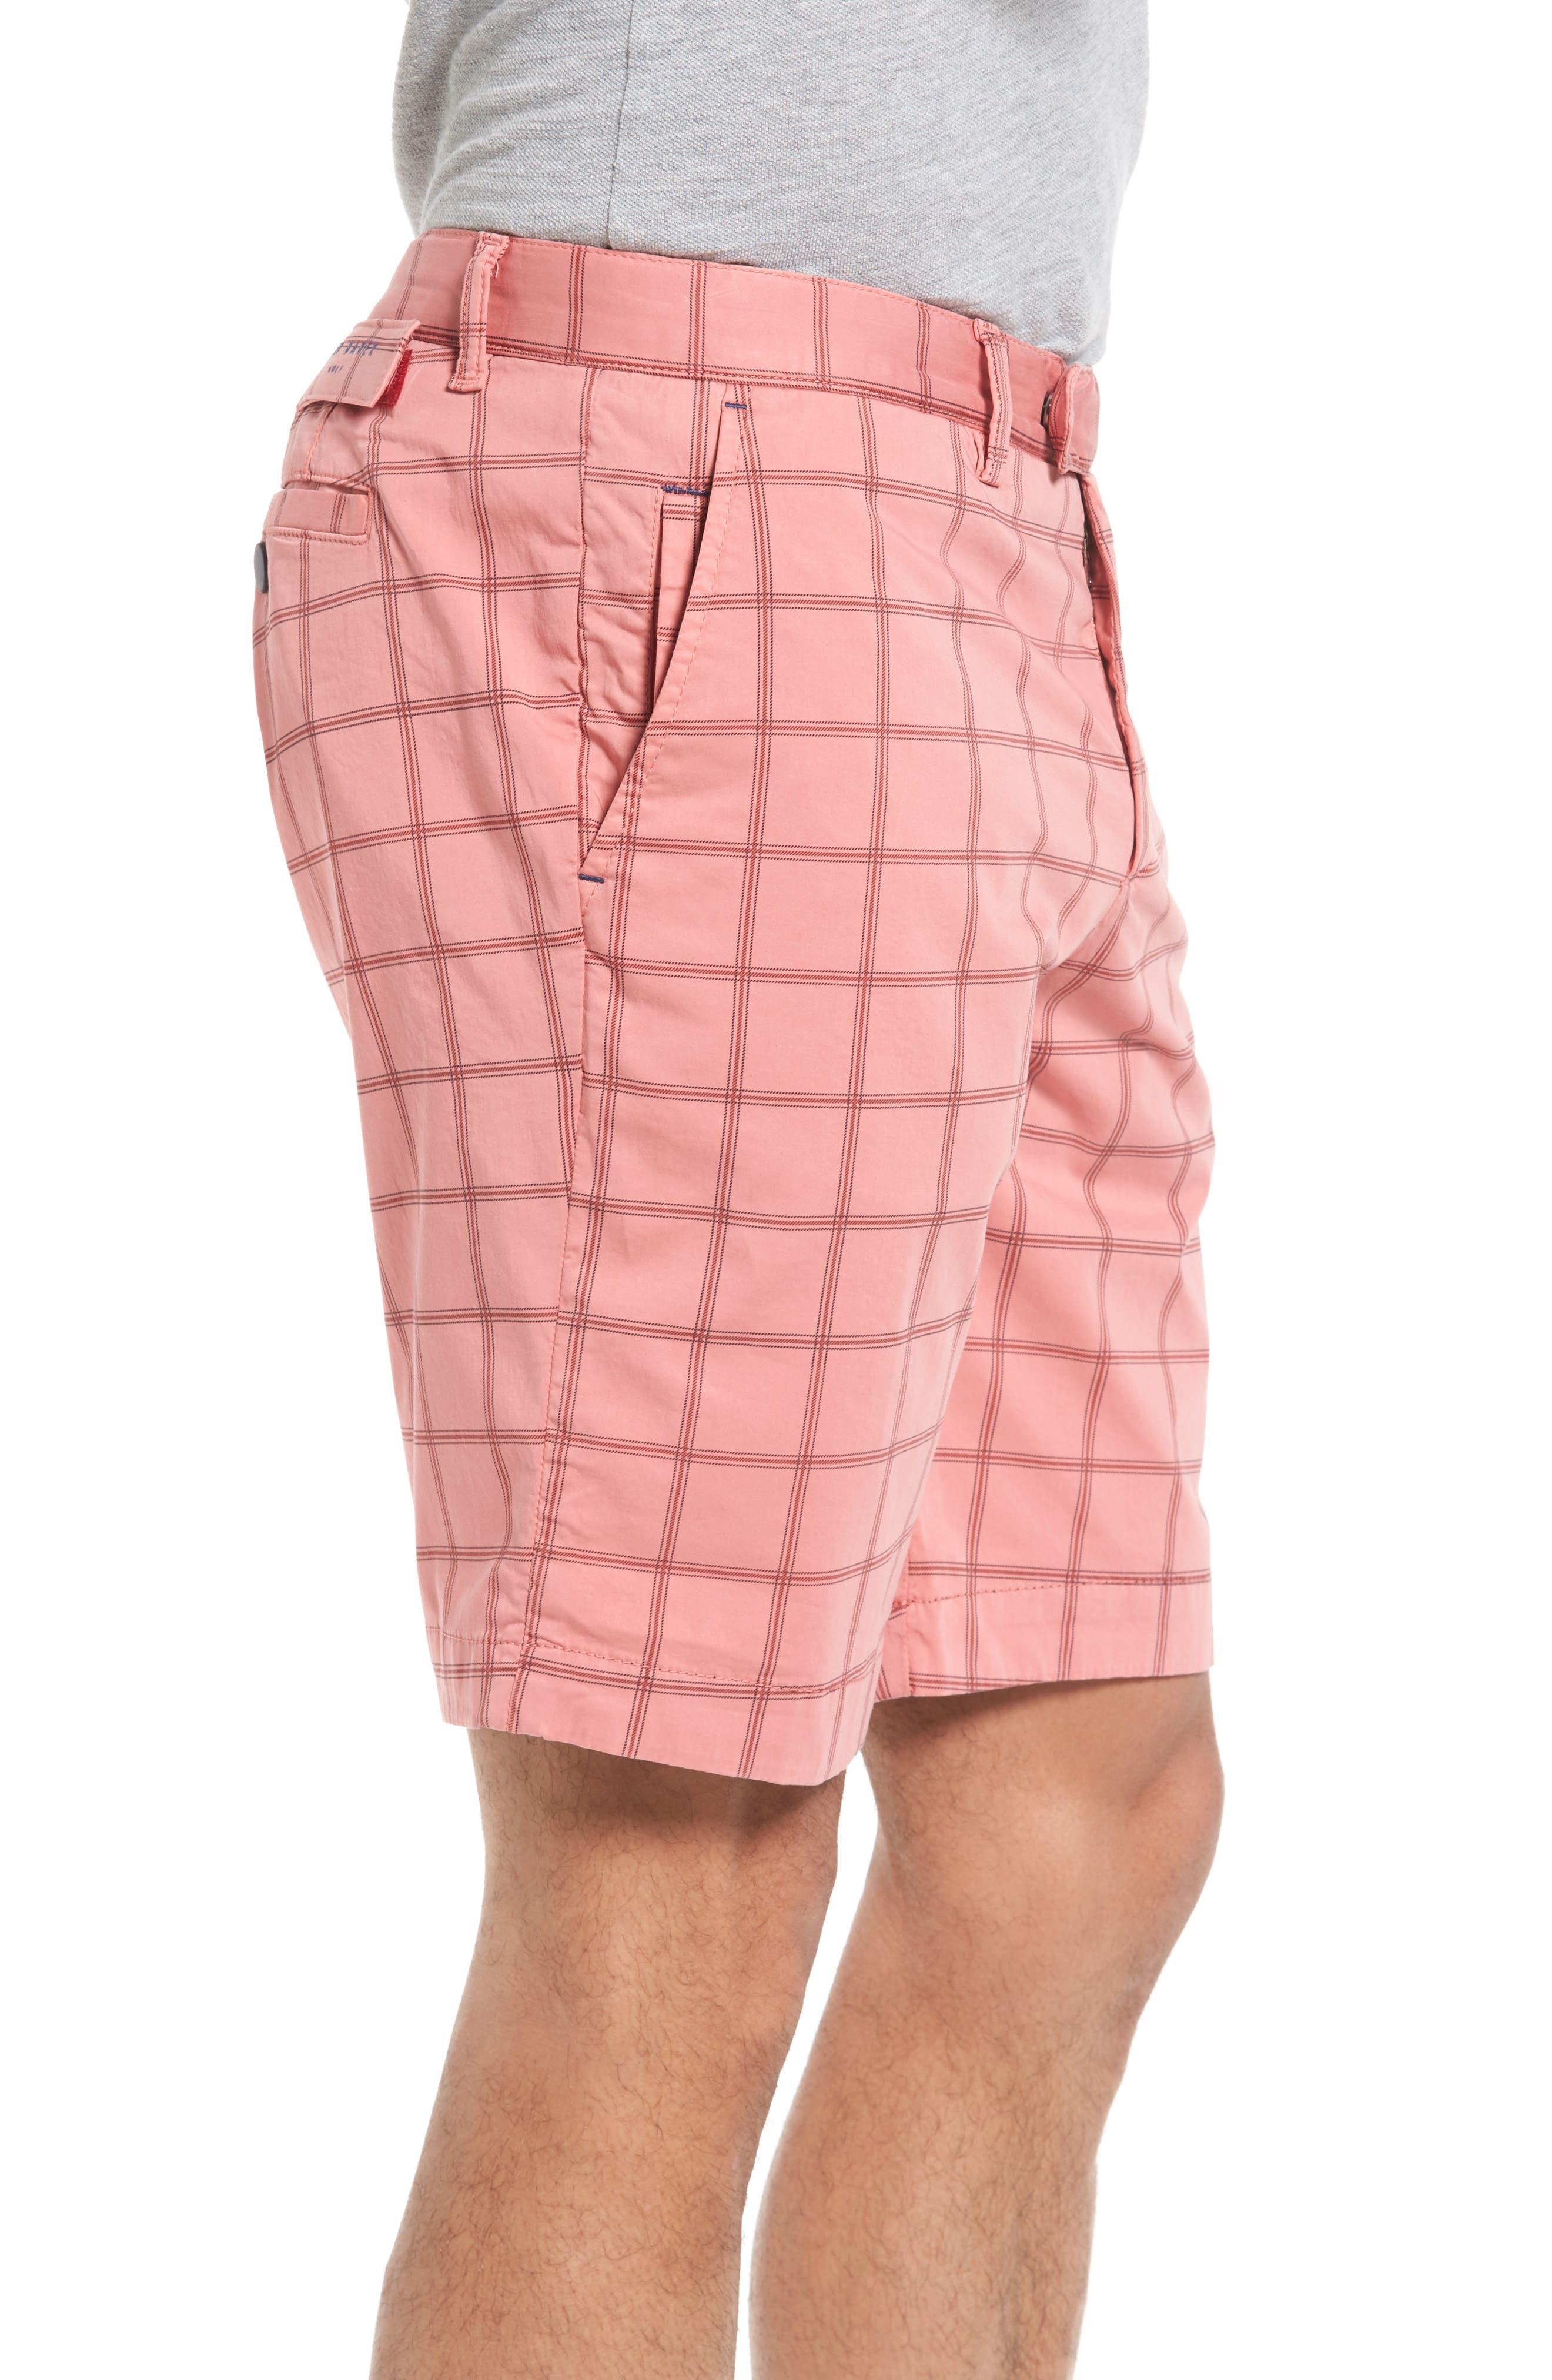 Golfshr Print Golf Shorts,                             Alternate thumbnail 9, color,